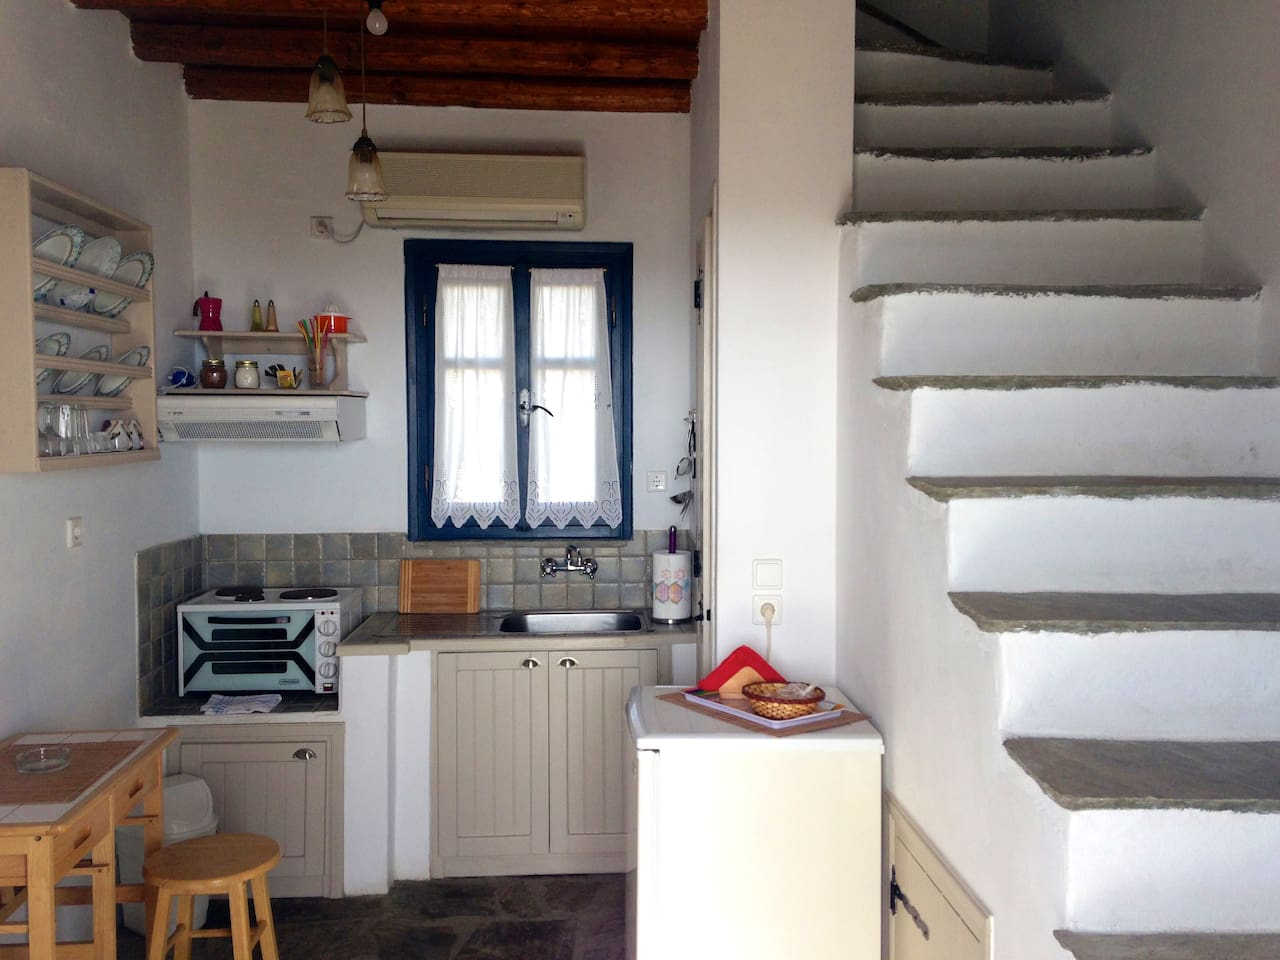 Entrance hall with kitchenette